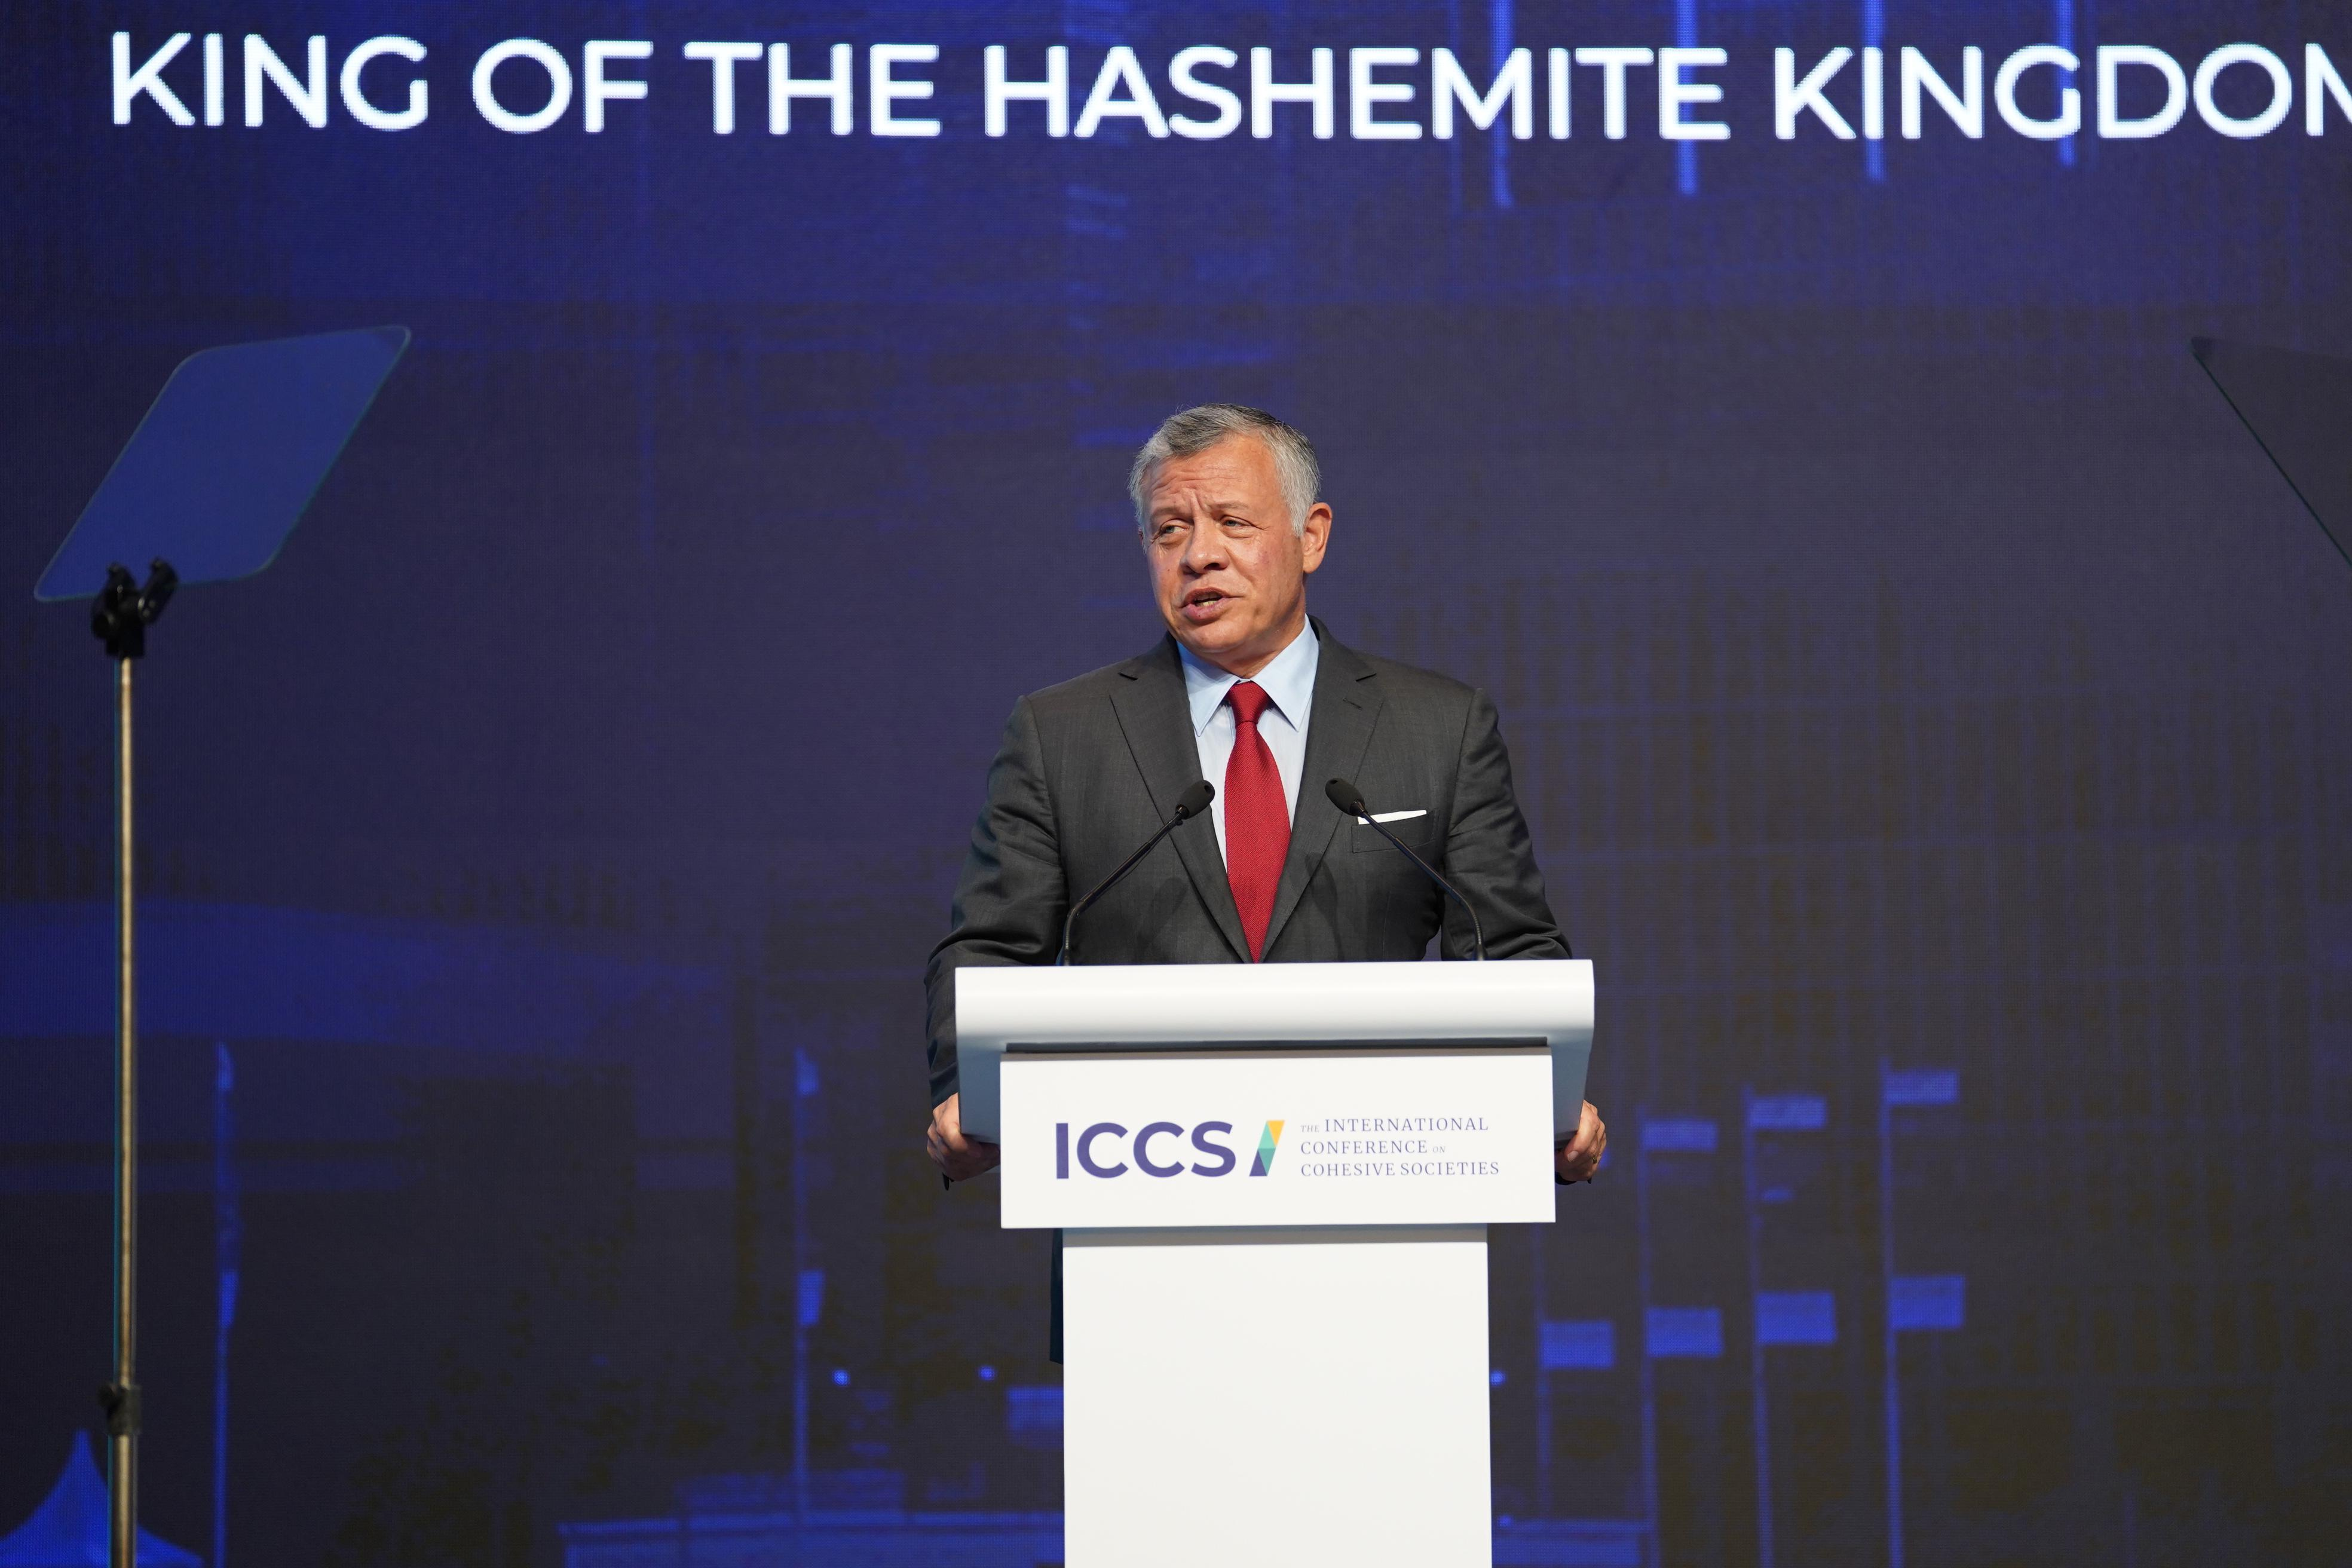 Attack on inter-faith harmony is greatest threat in the world today: King Abdullah of Jordan